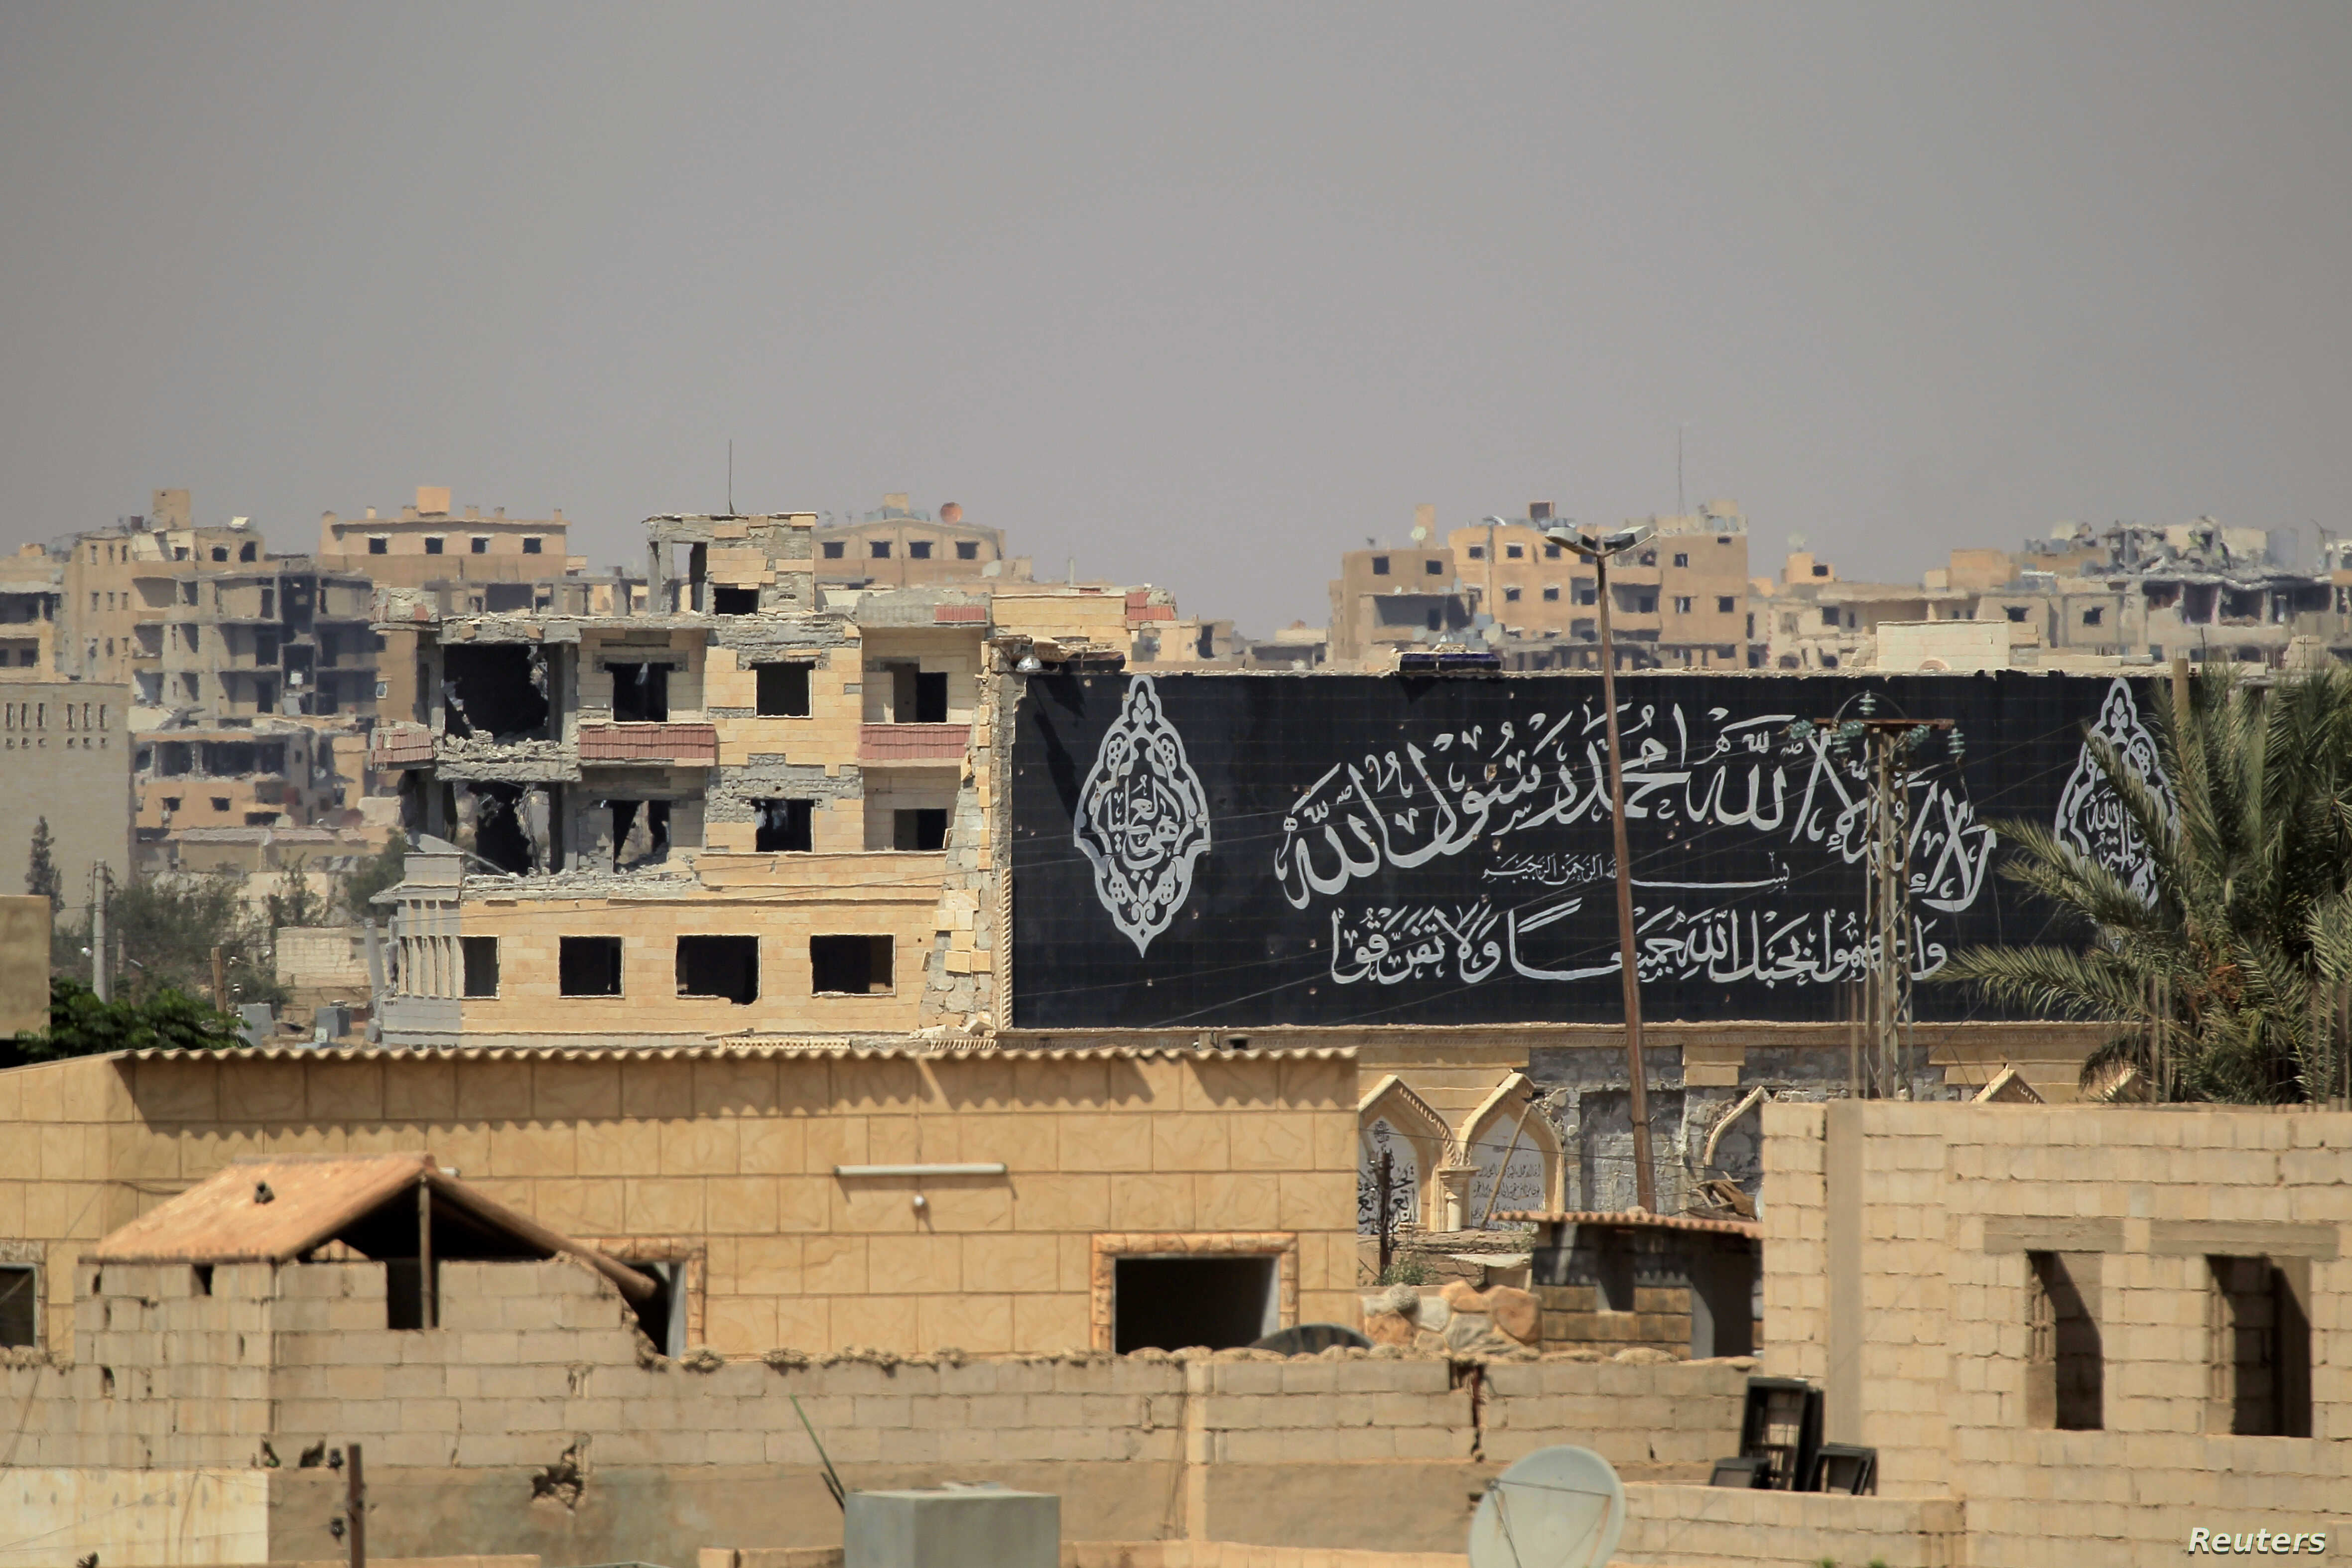 A banner belonging to Islamic States fighters is seen during a battle with members of the Syrian Democratic Forces in Raqqa, Syria, Aug. 16, 2017.